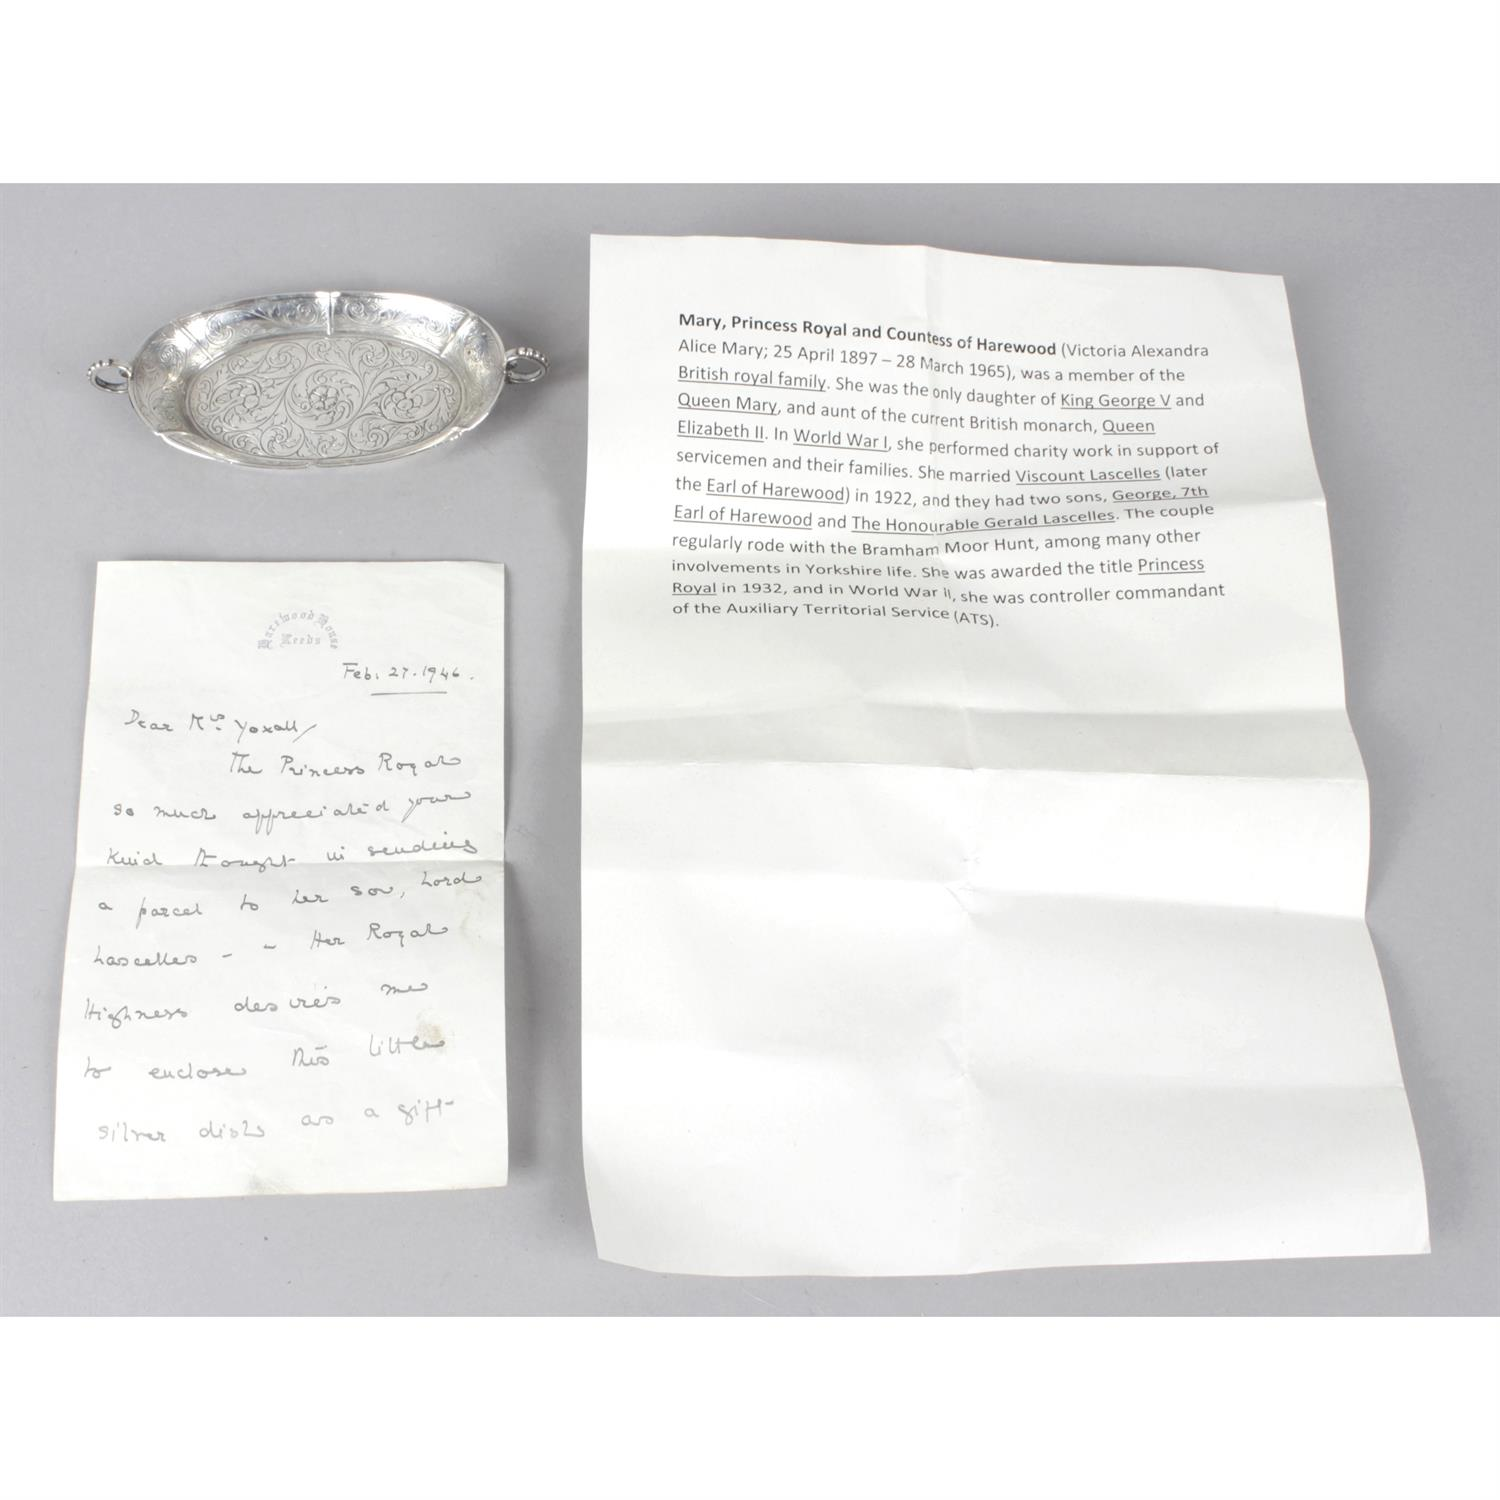 A silver trinket dish, given as a gift with accompanying letter of royal interest. - Image 3 of 3